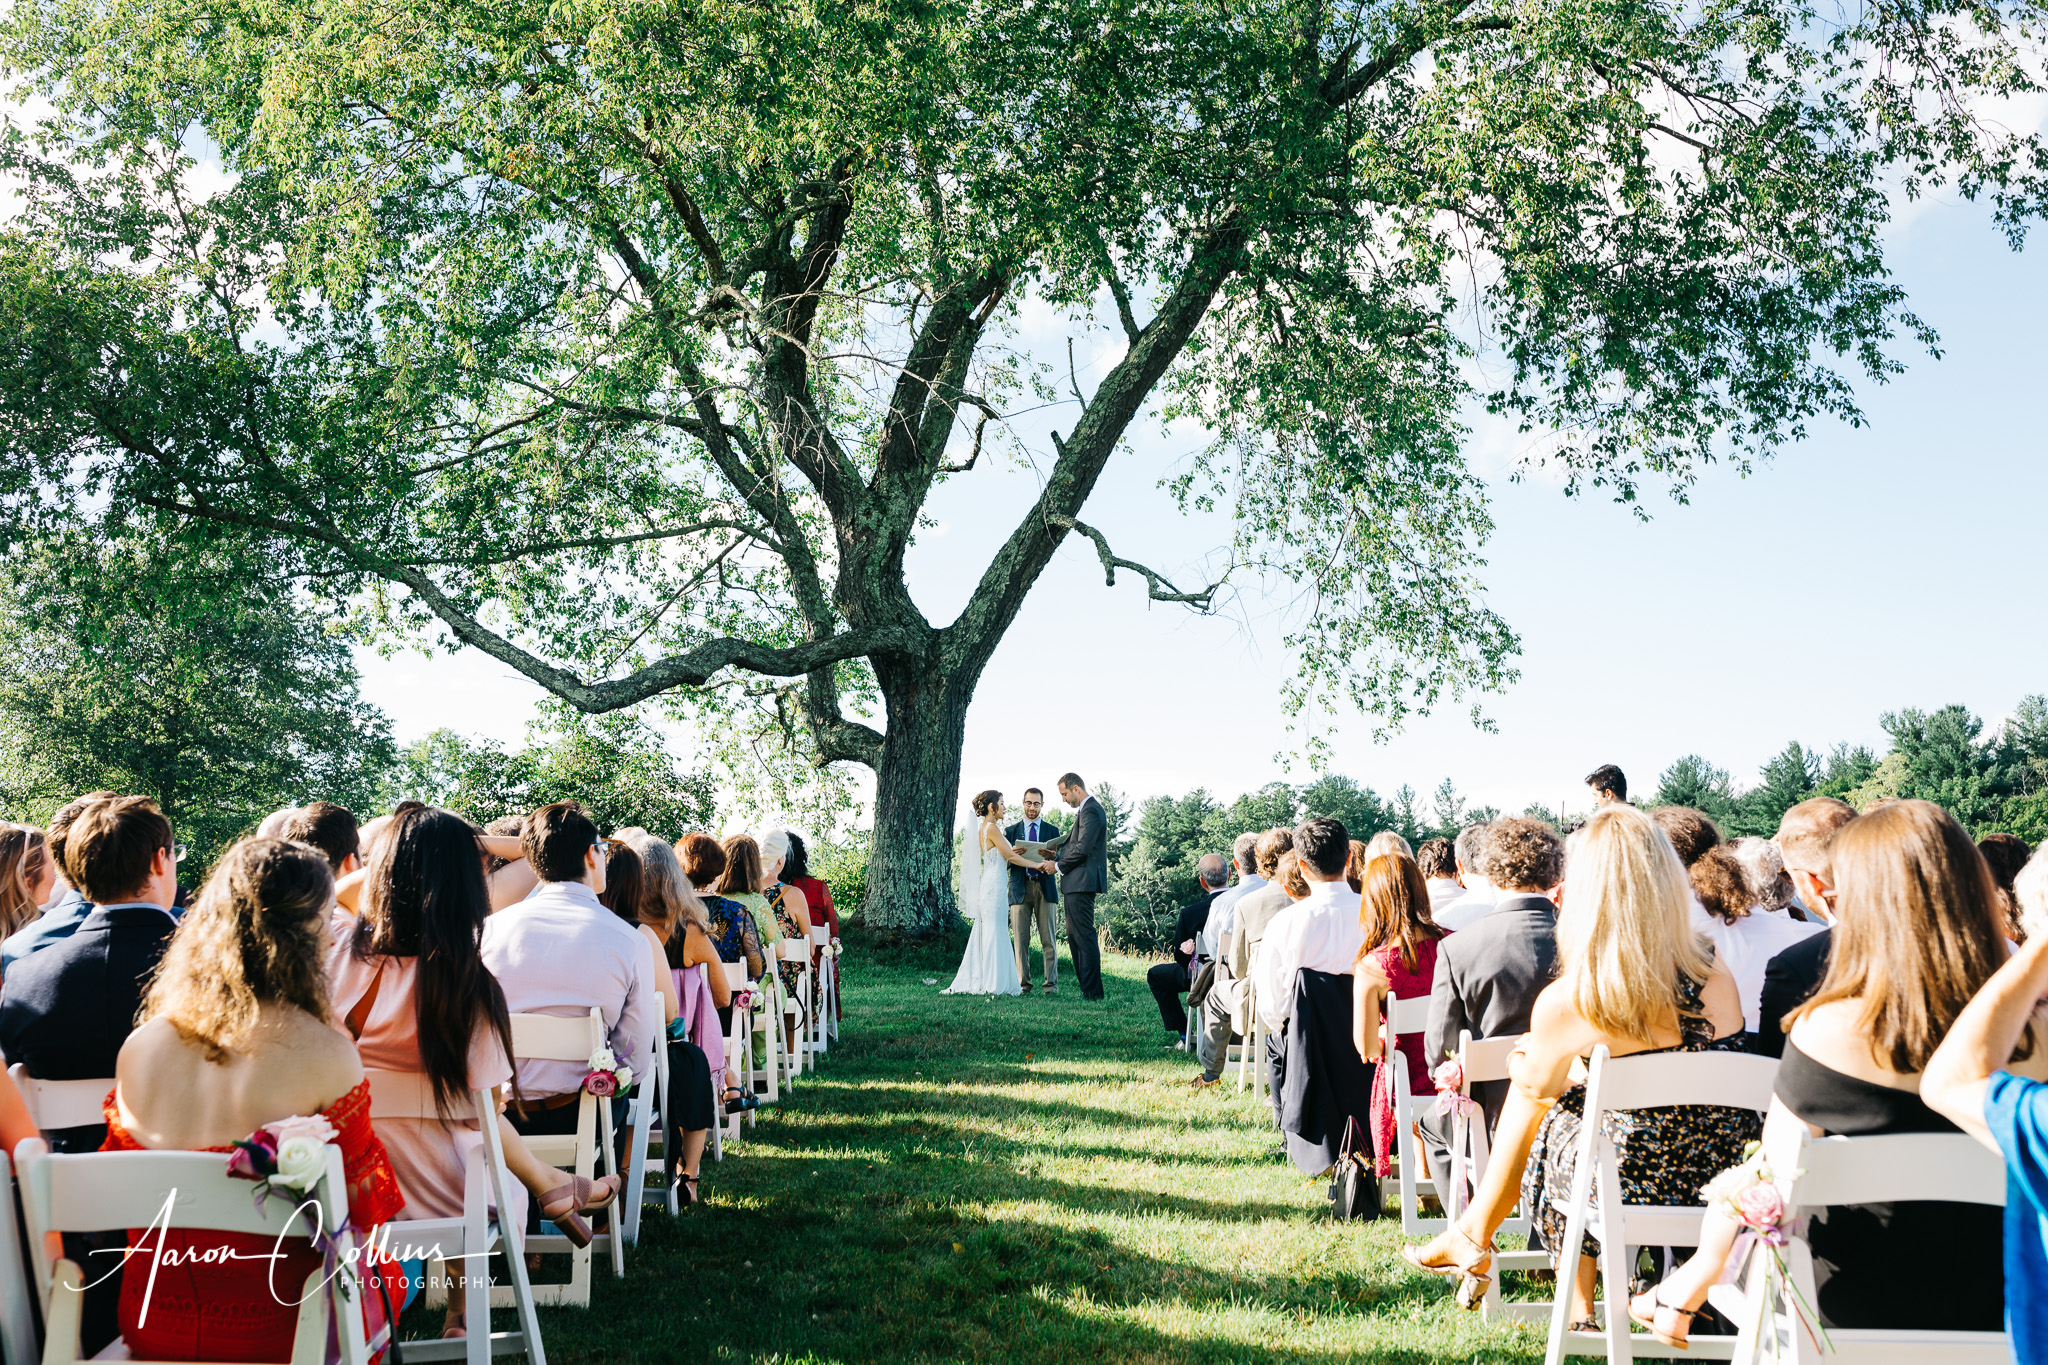 Wedding ceremony under the tree at Gedney Farms